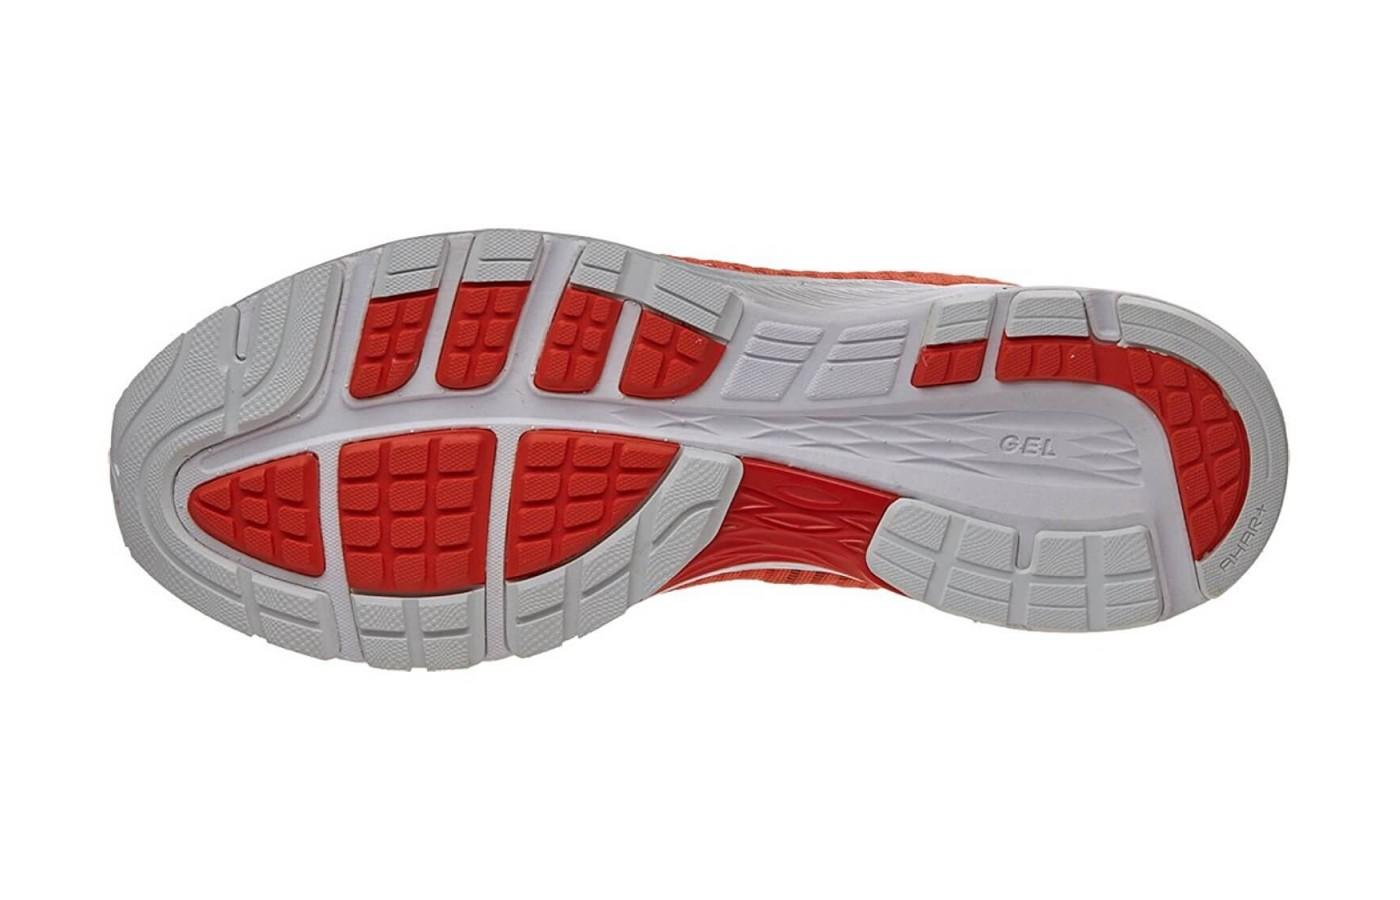 This shoe features a highly durable outsole.